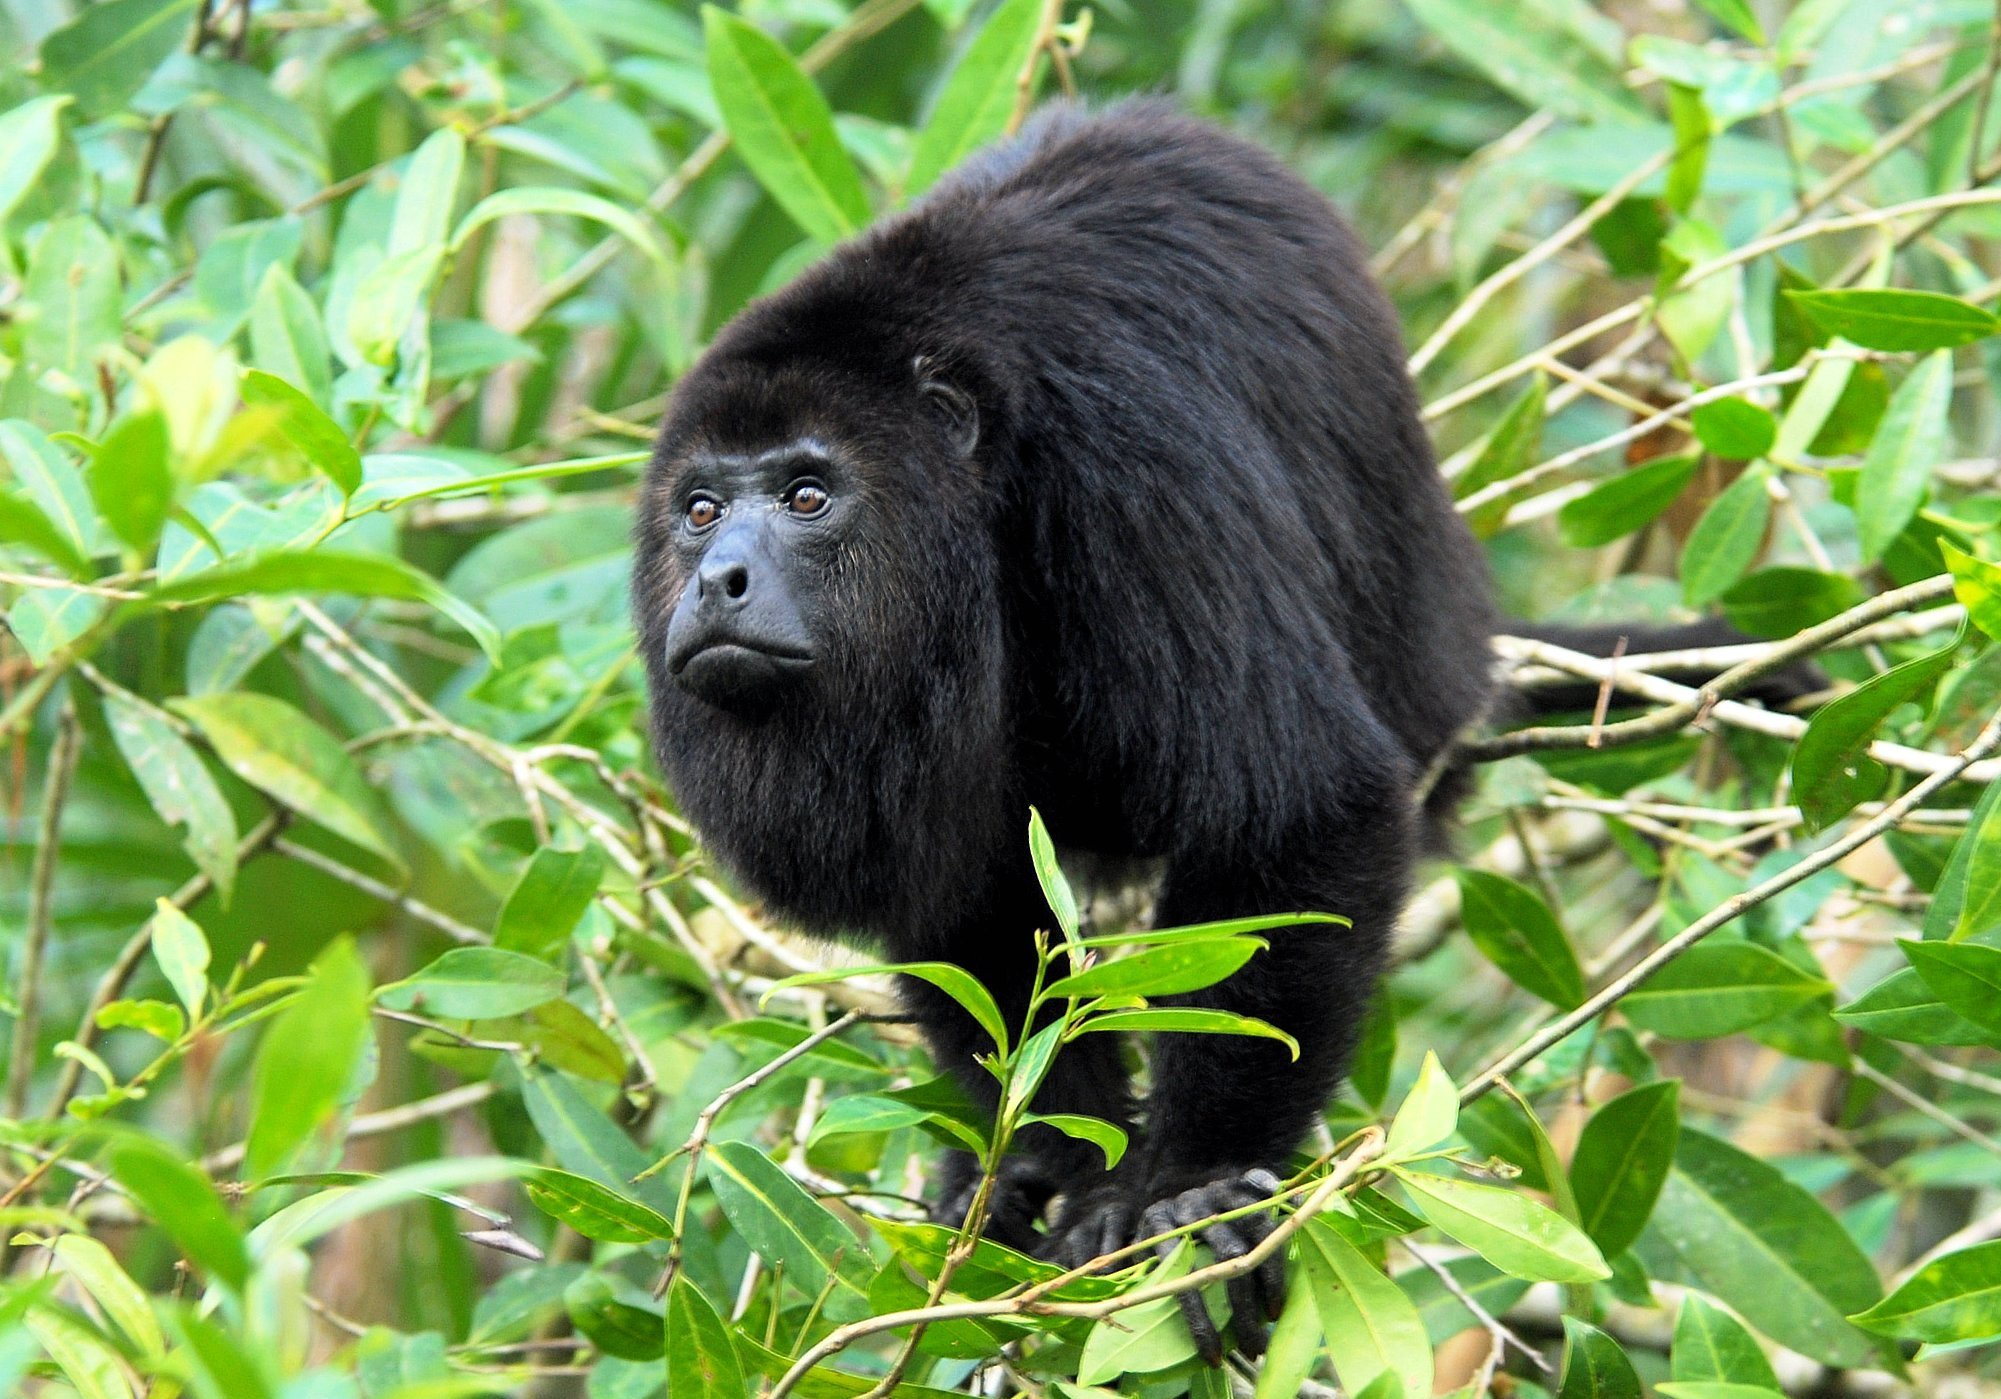 The-black-howler-monkey